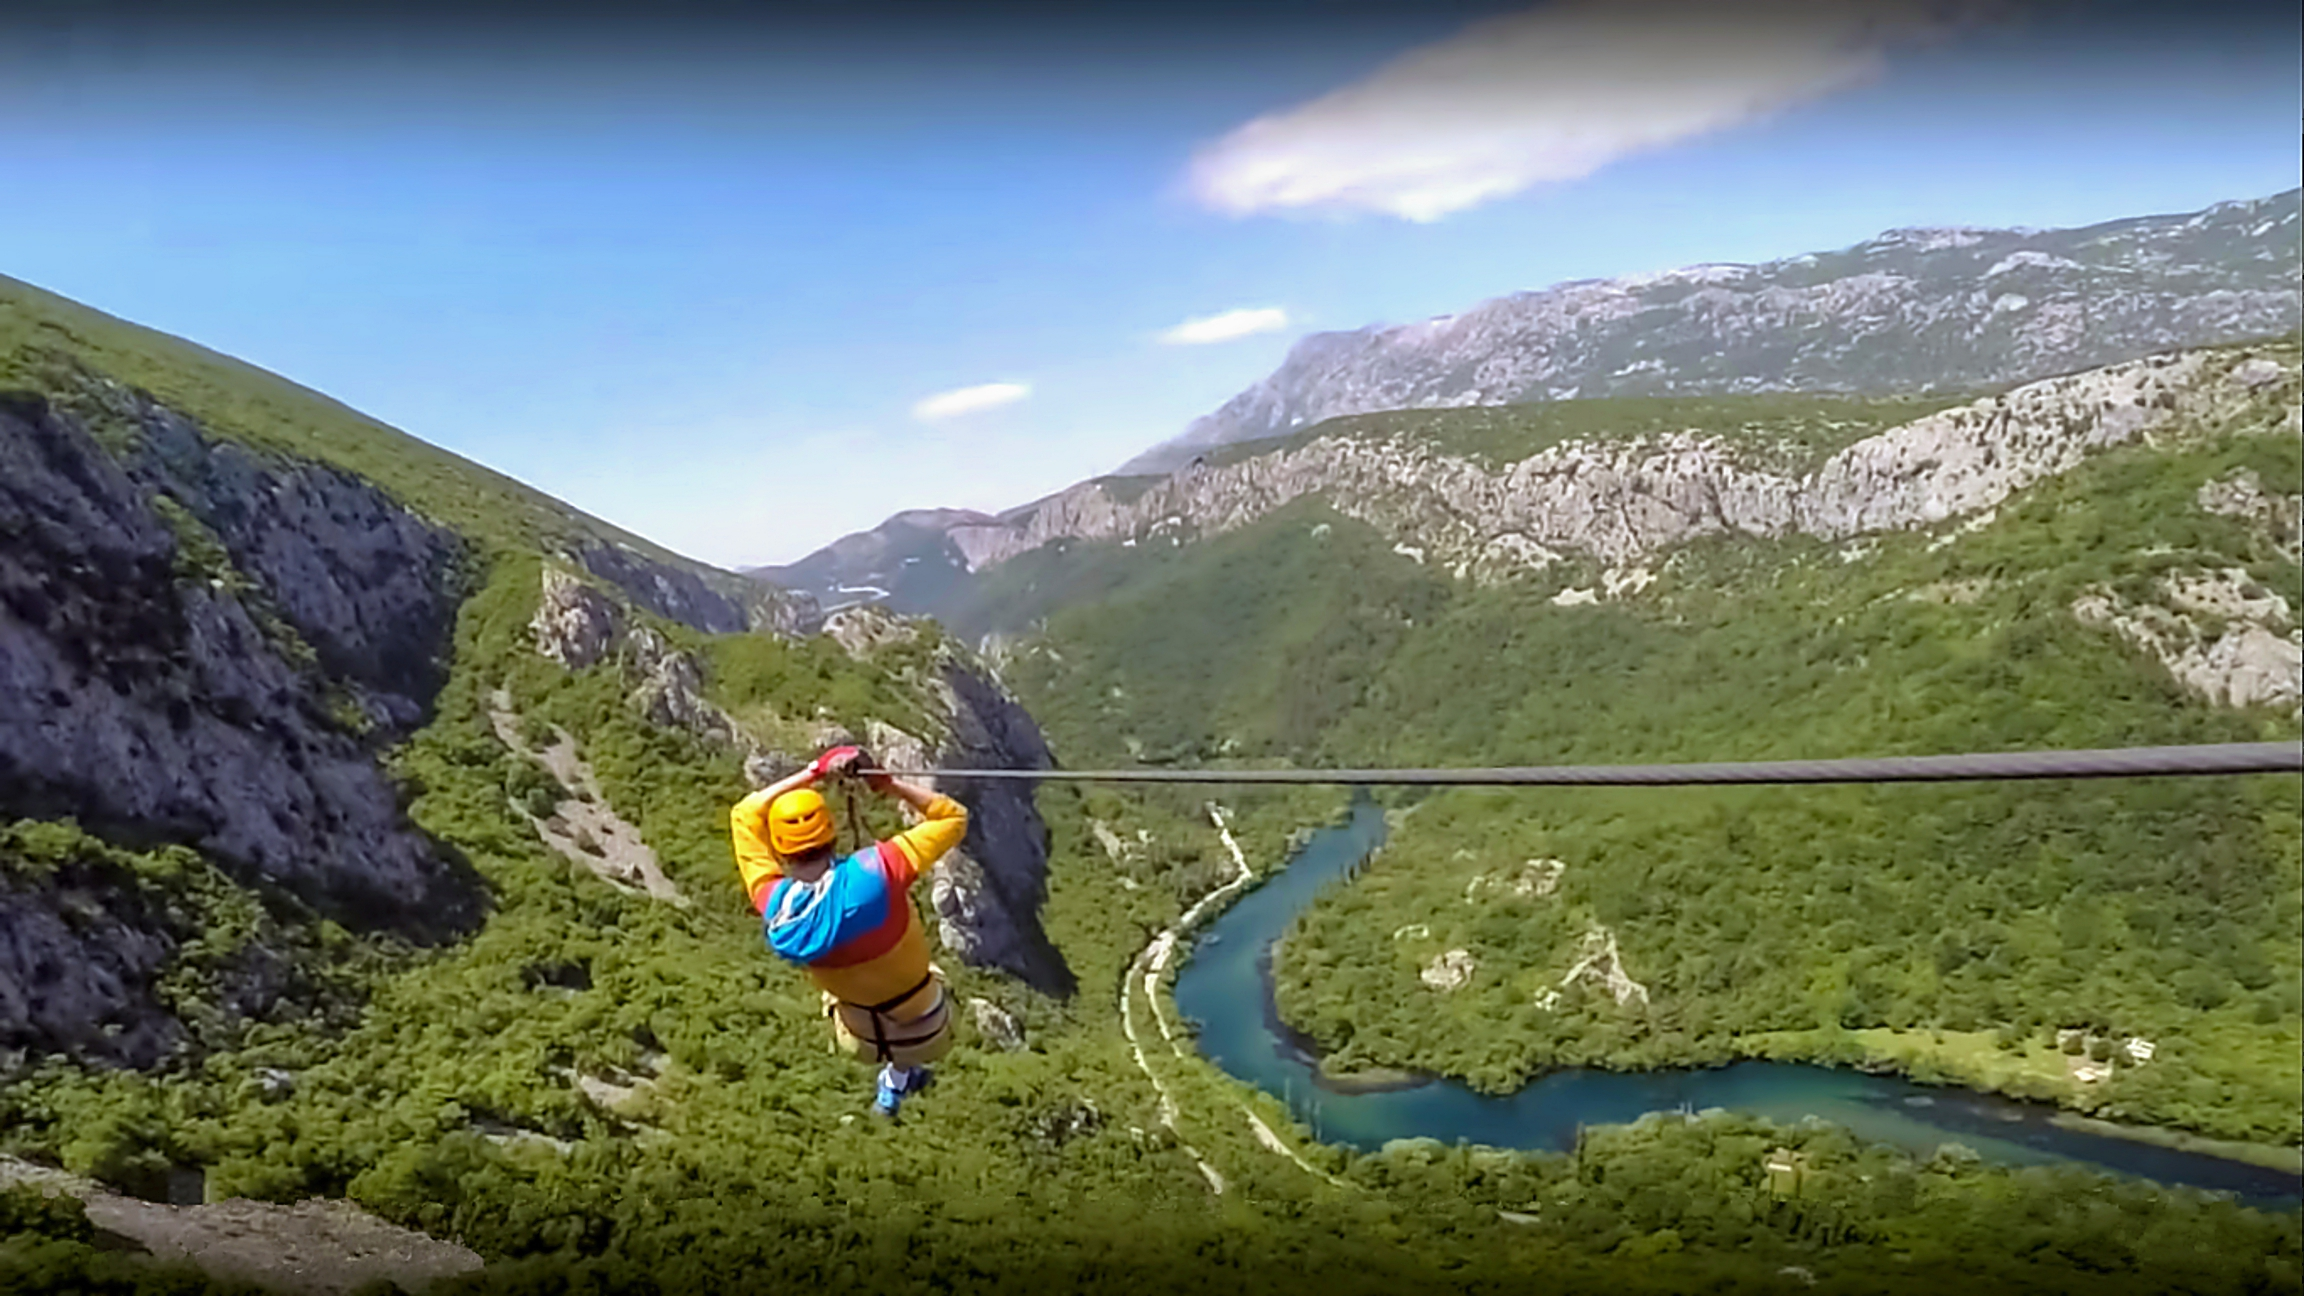 Have Fun Ziplining in Croatia